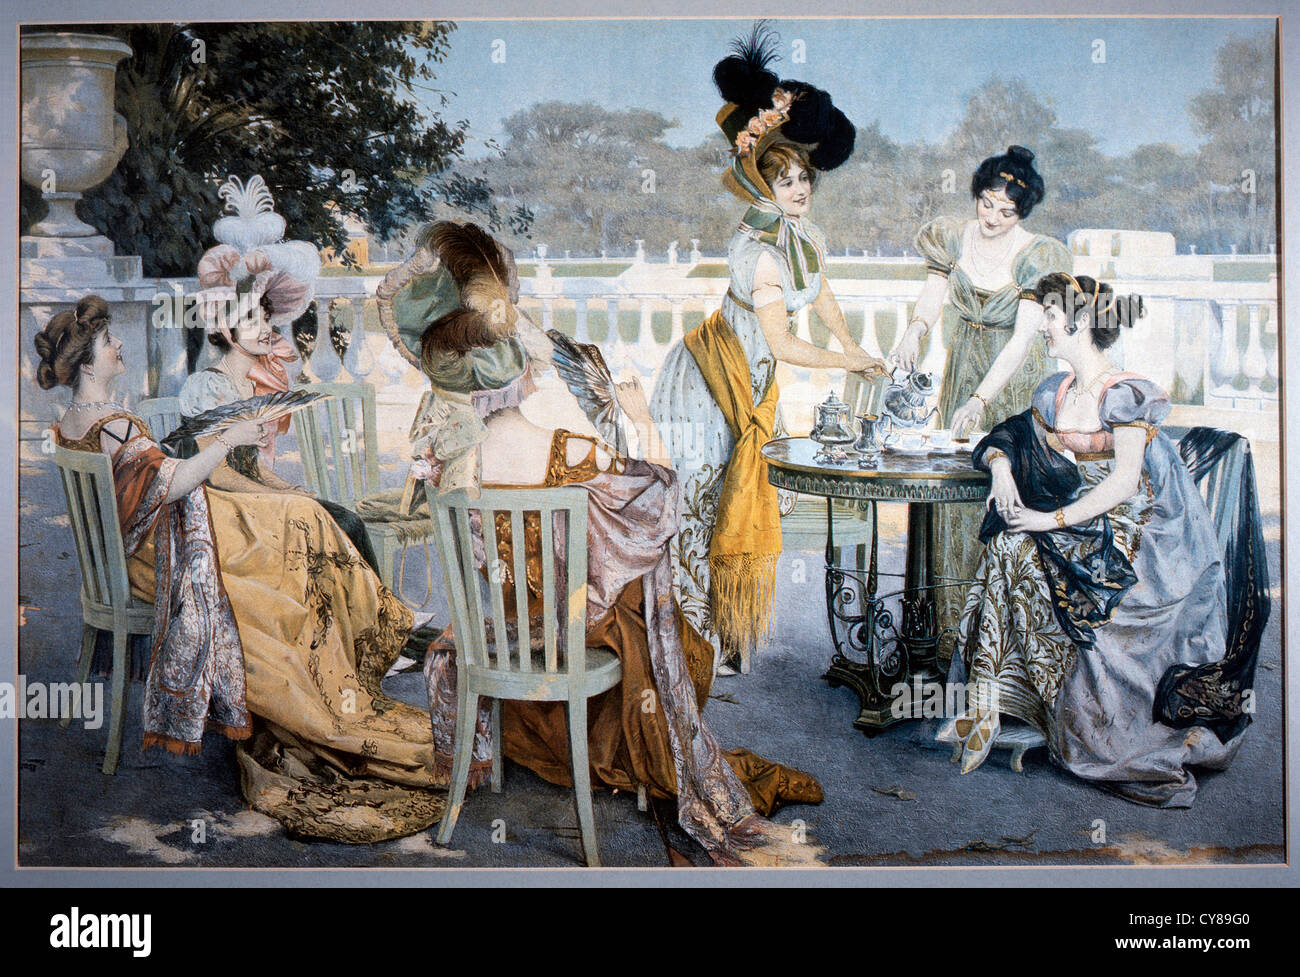 Group Of Women In Victorian Era Dresses At Outdoor Tea Party Painting Circa